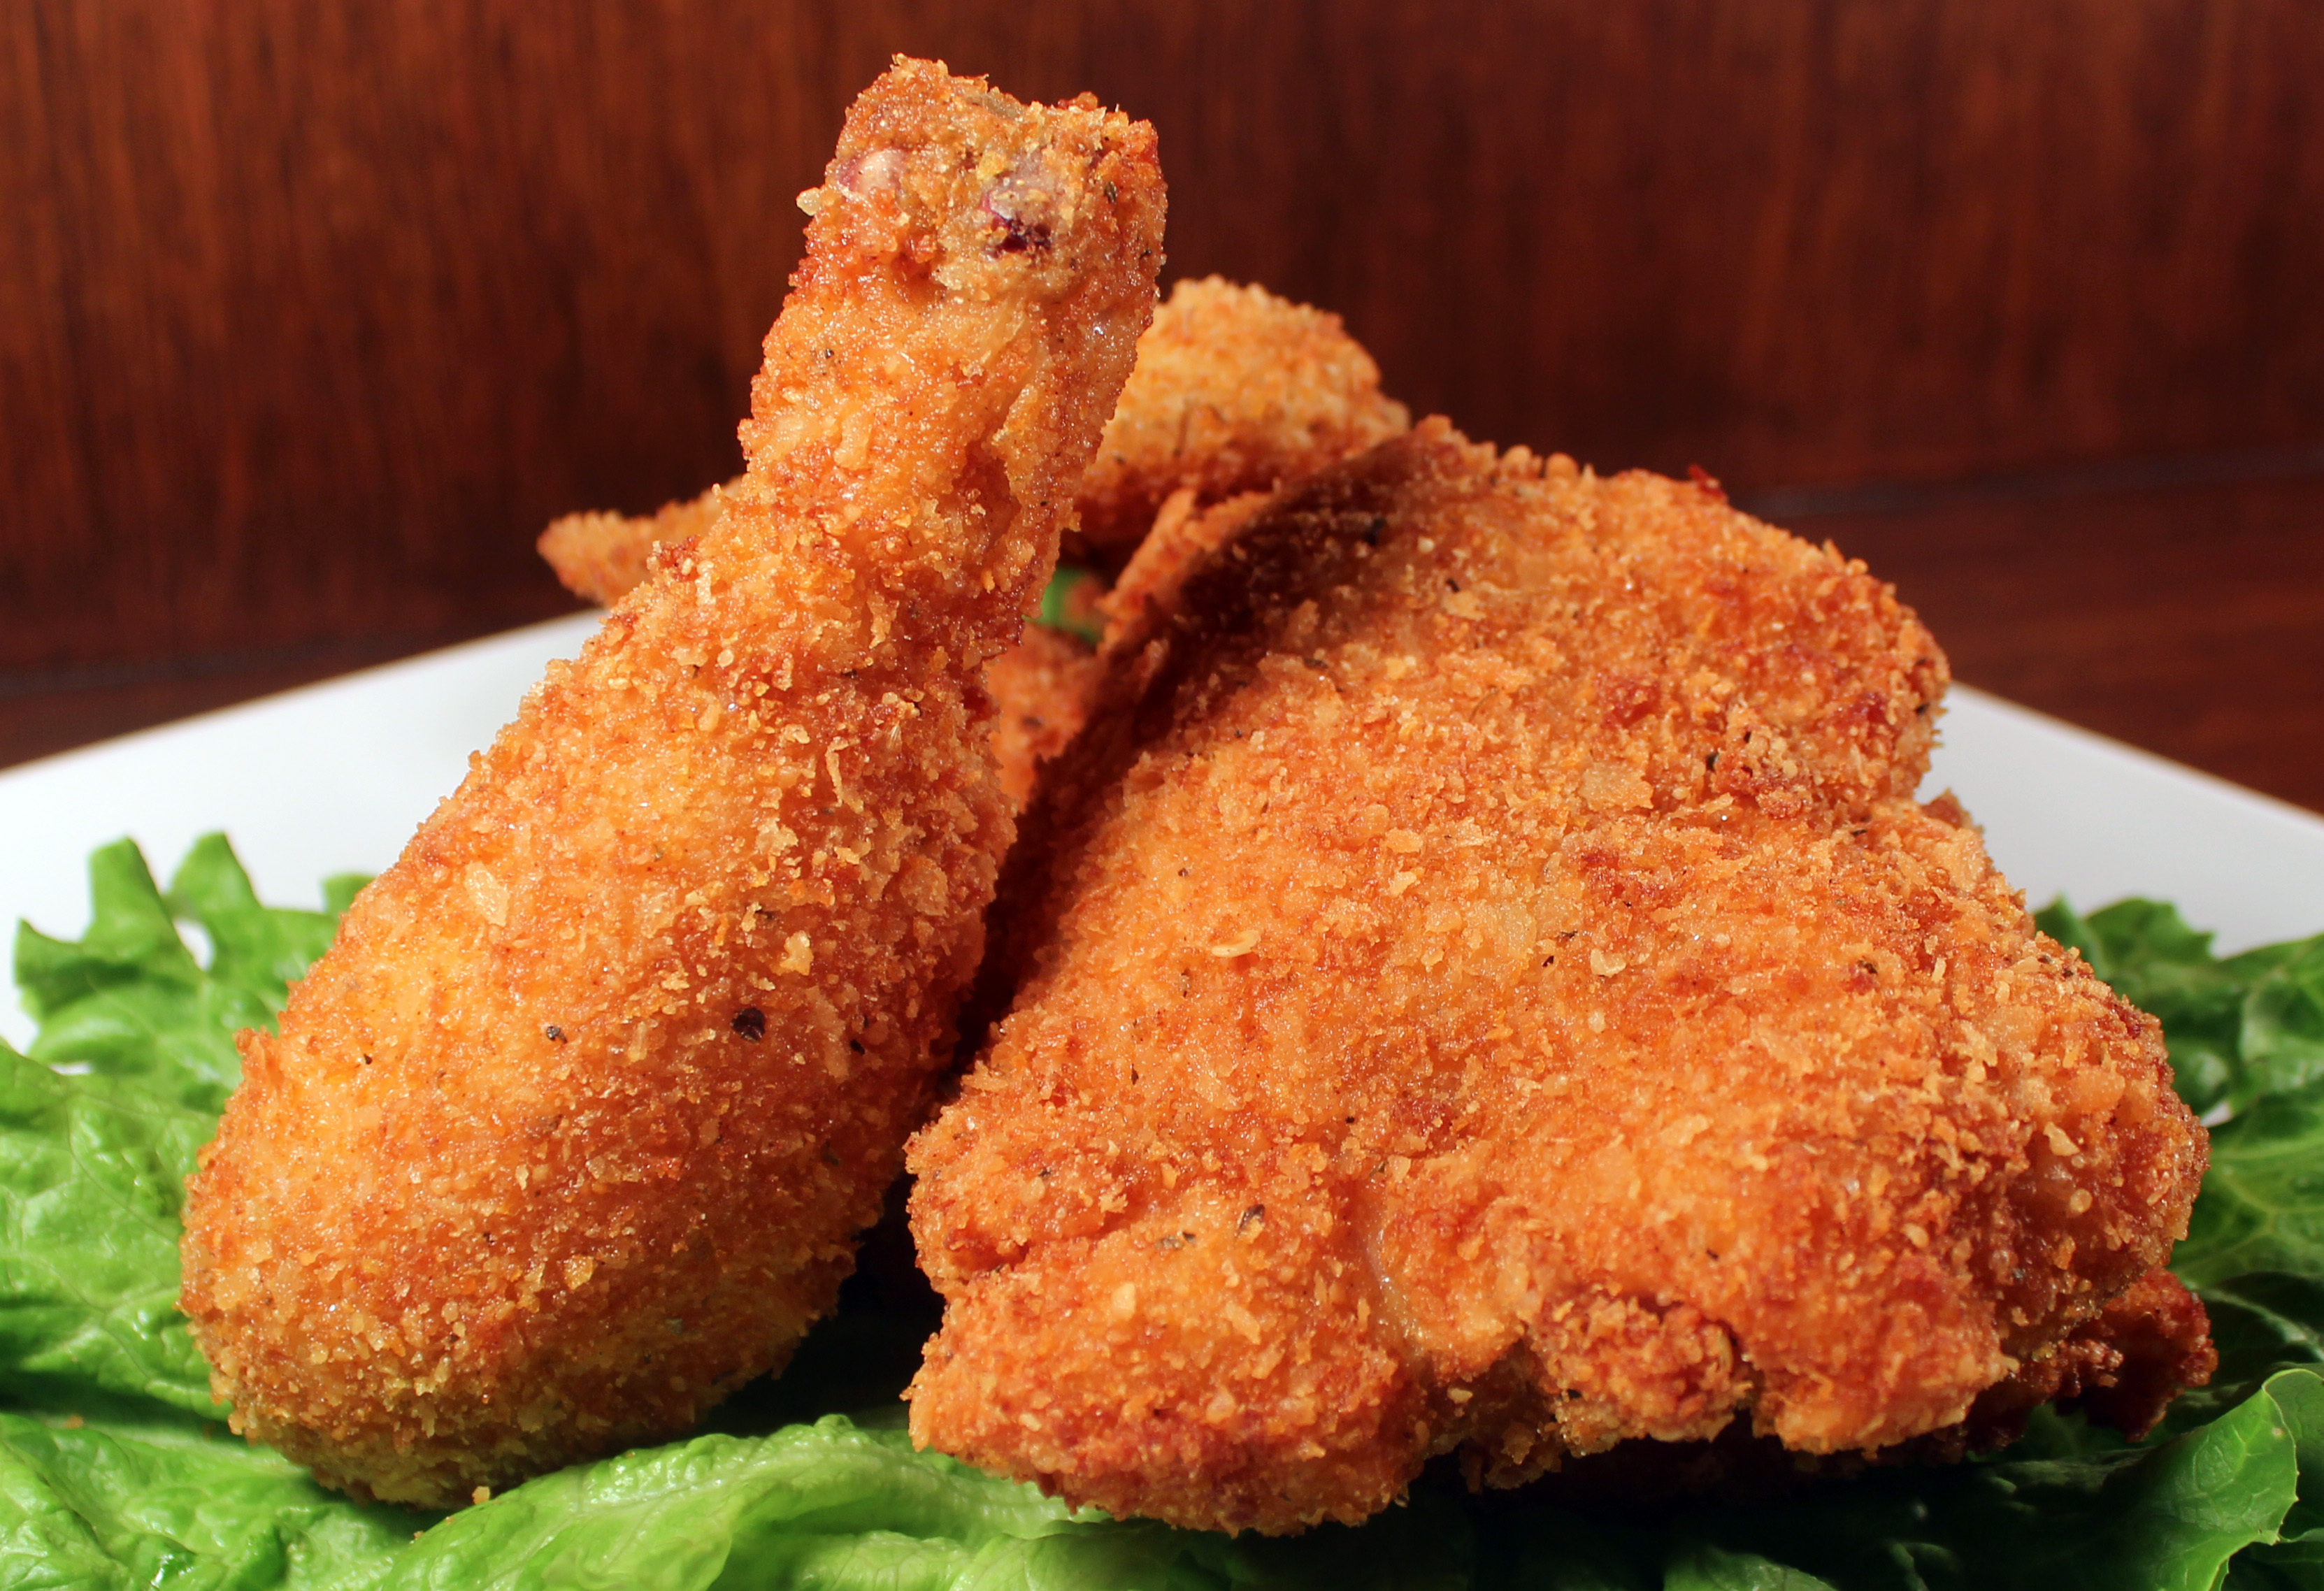 Pictures Of Fried Chicken